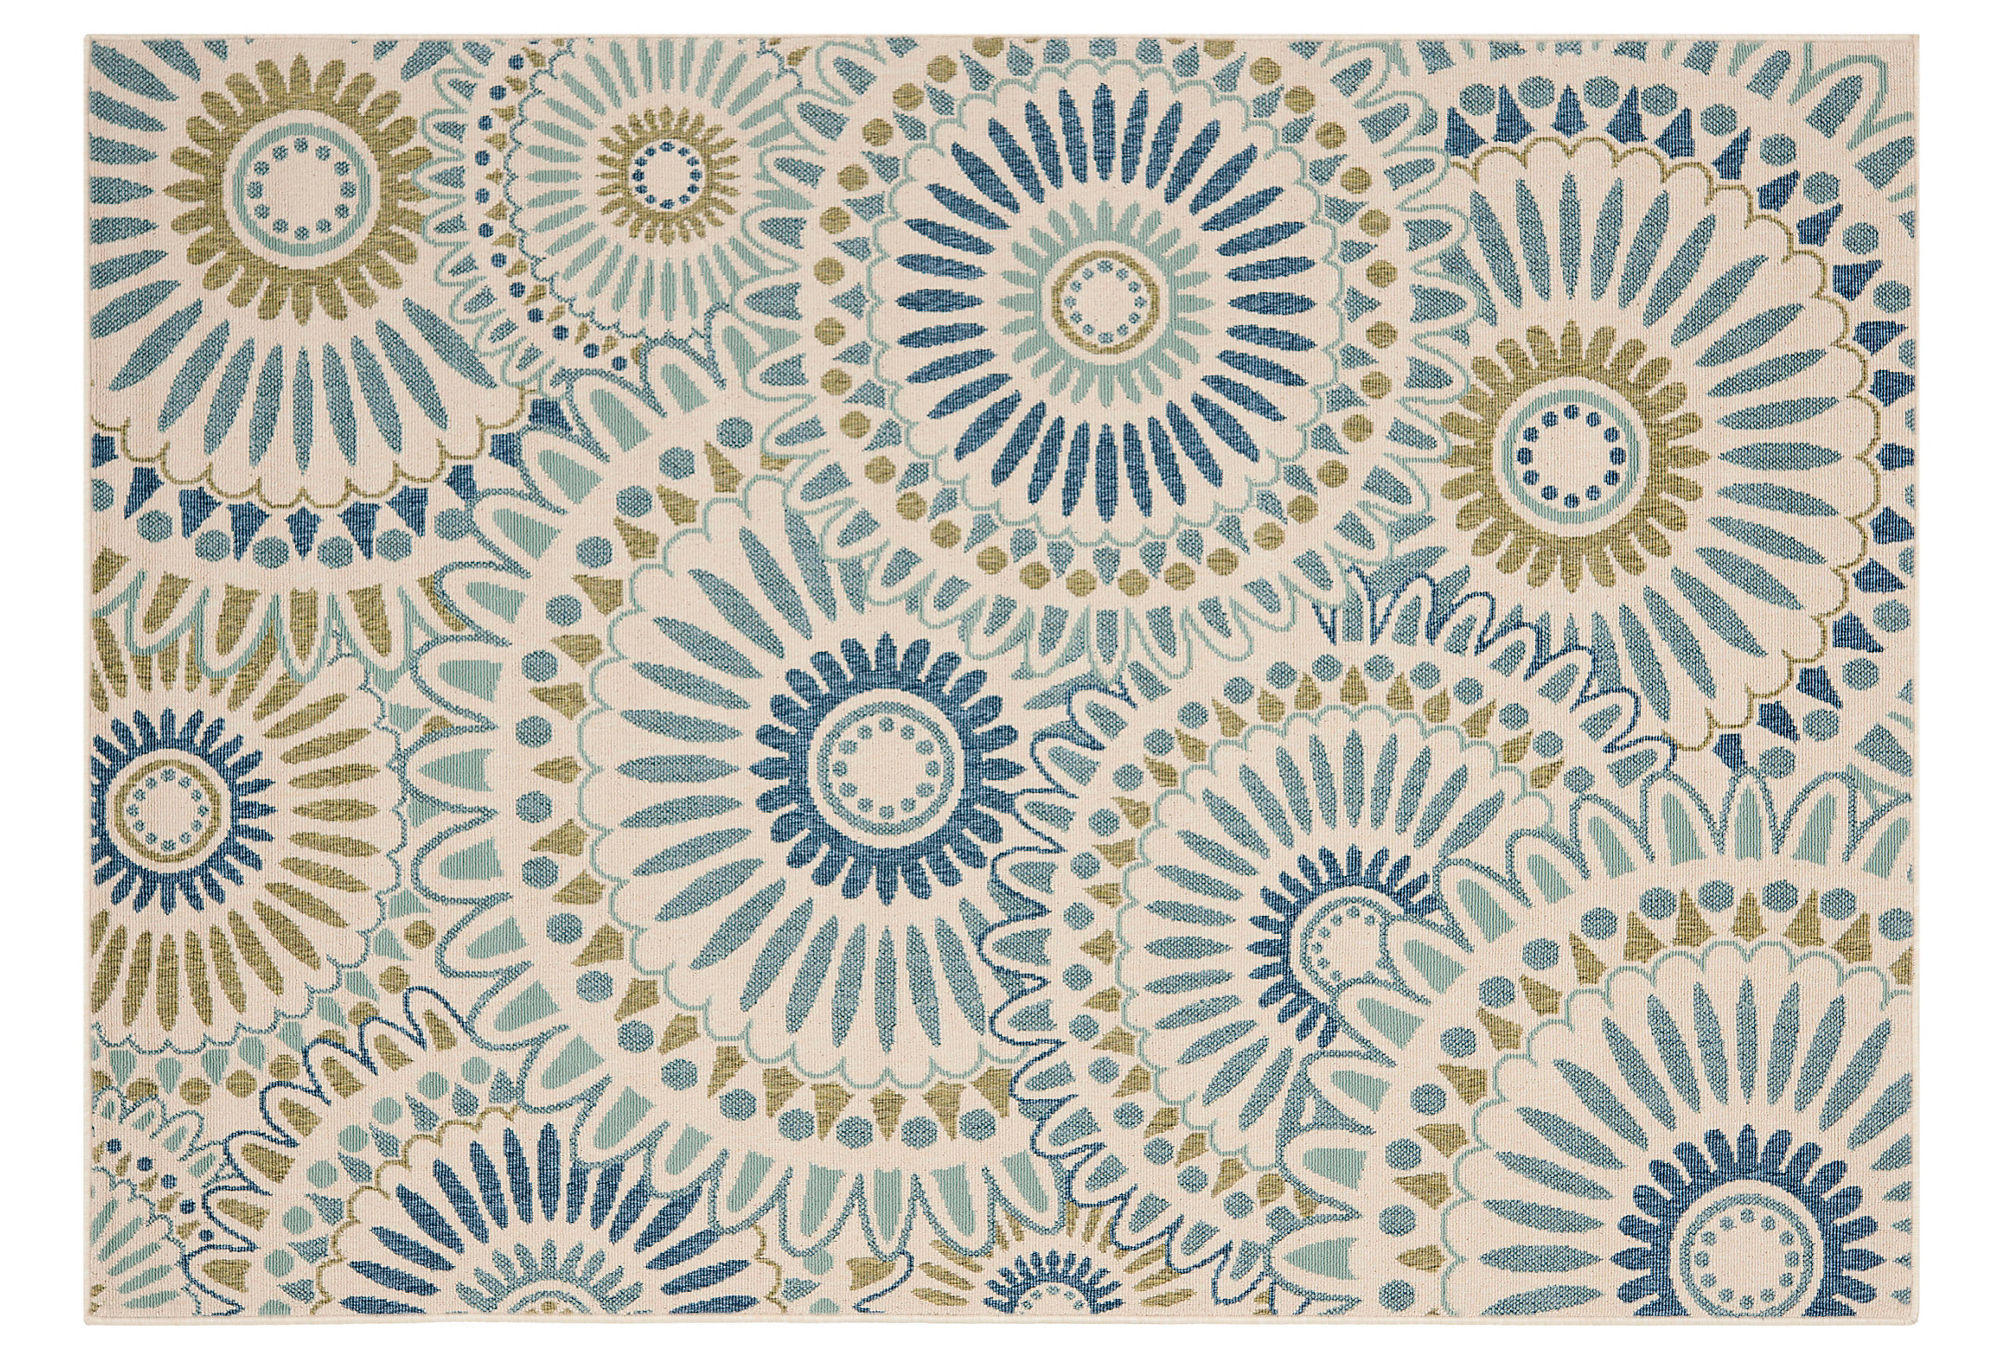 Sultan Outdoor Rug Blue Green Area Rugs from e Kings Lane